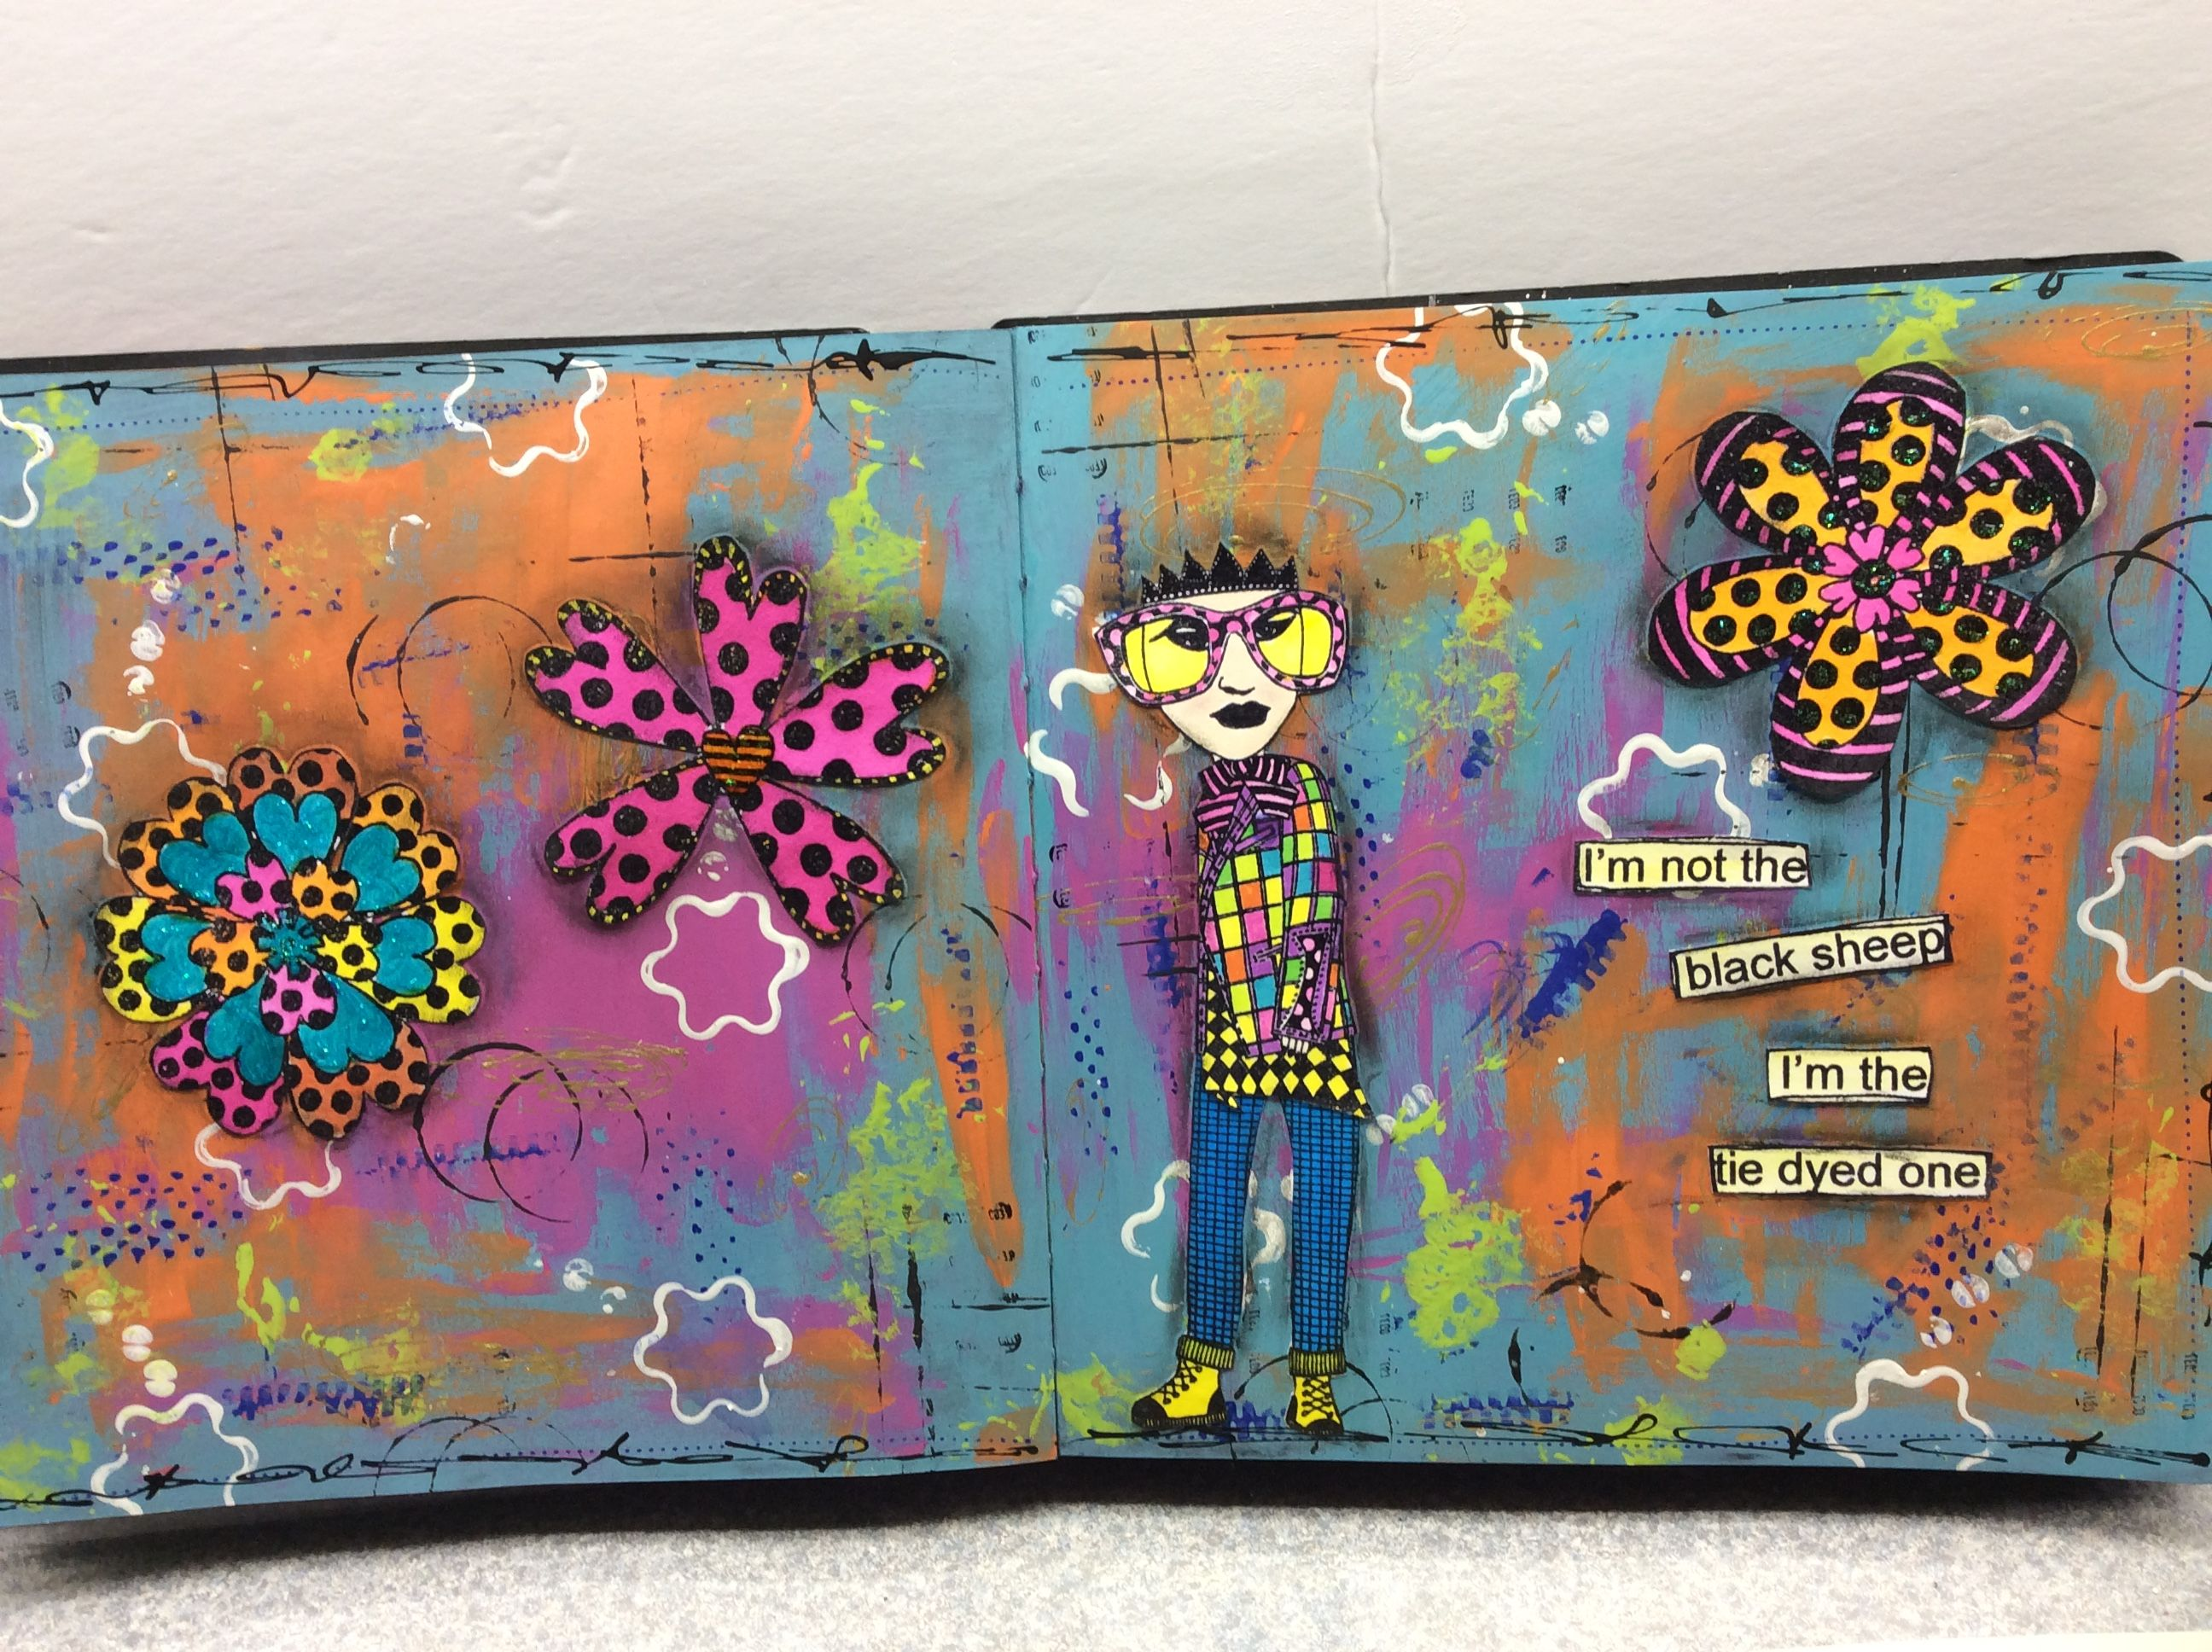 Playing with dylusions and paint in my black dylusions journal